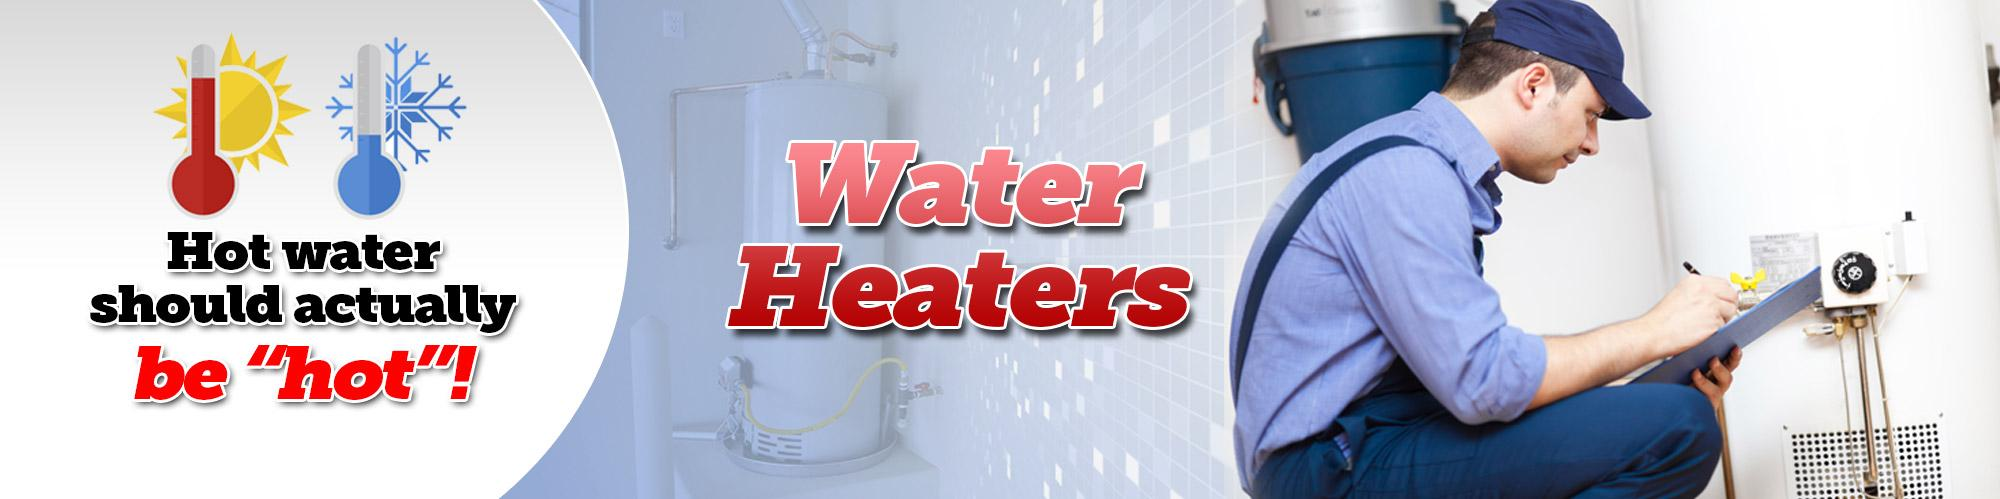 Water Heater Services by Budget Rooter in New Castle County, DE